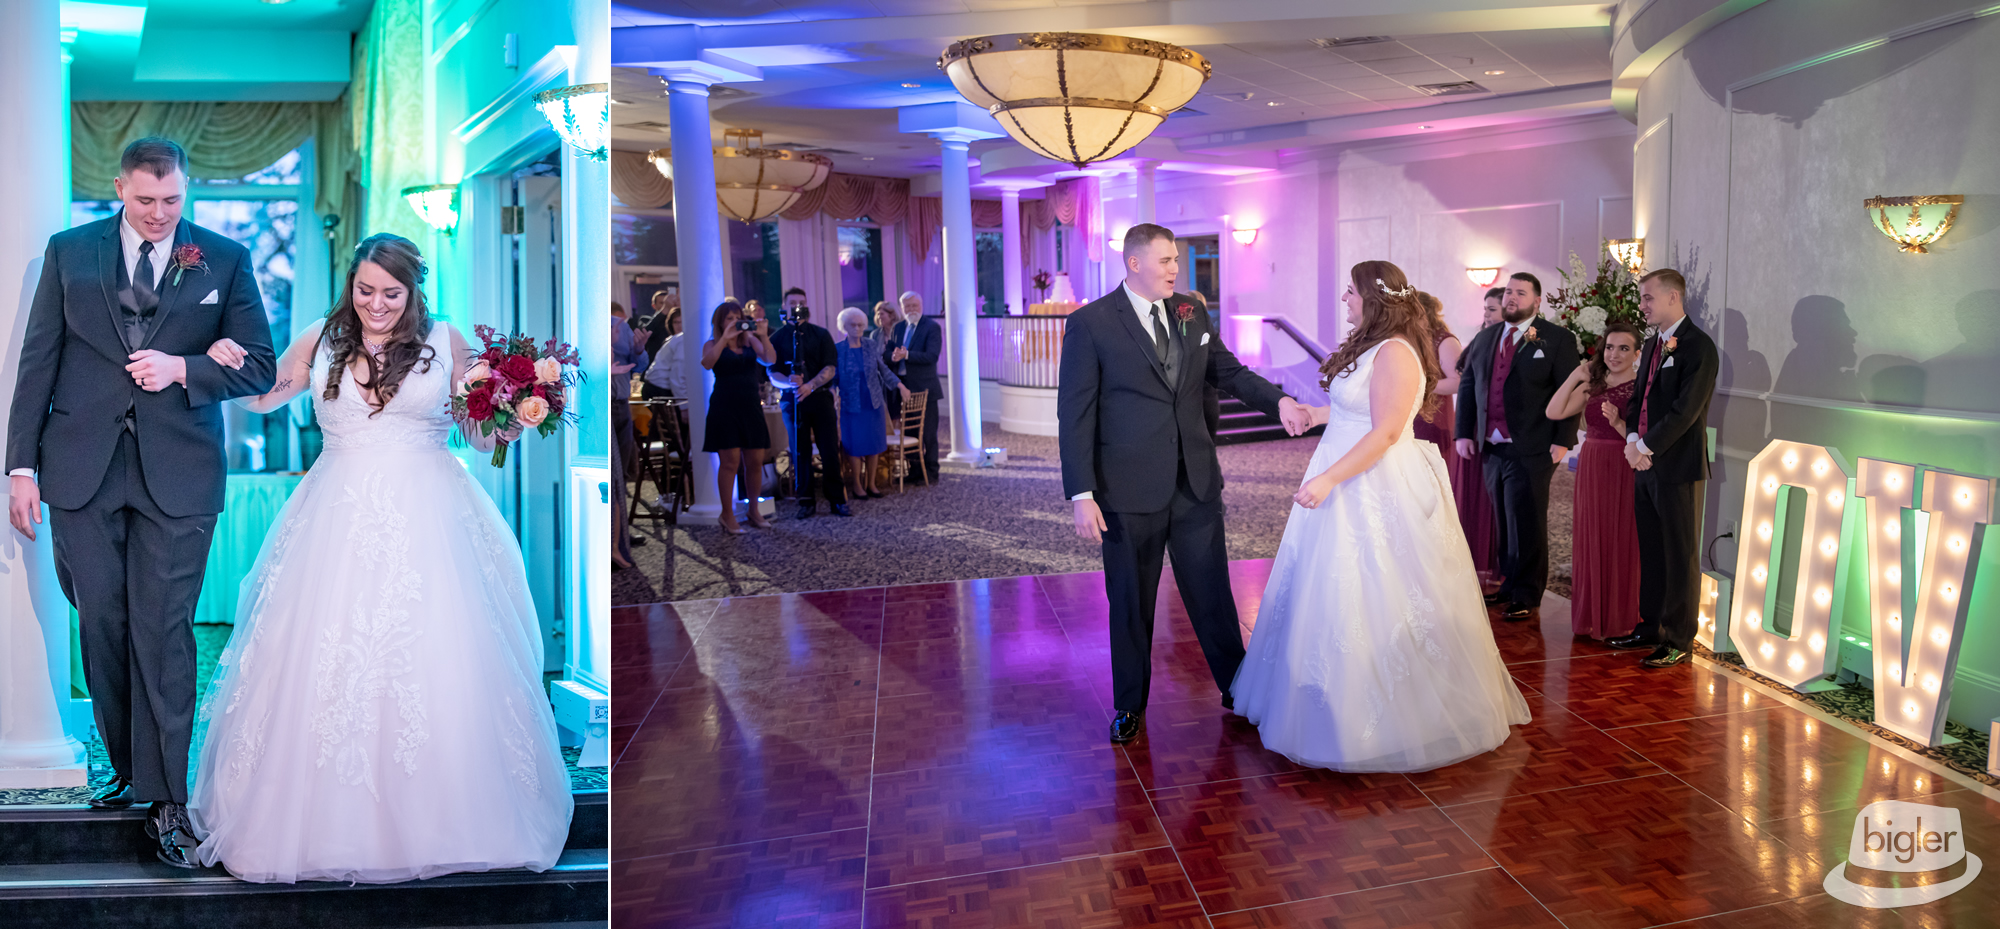 20181110_-_23_-_Amanda_and_Michael,_Albany_Country_Club,_Wedding_Photos